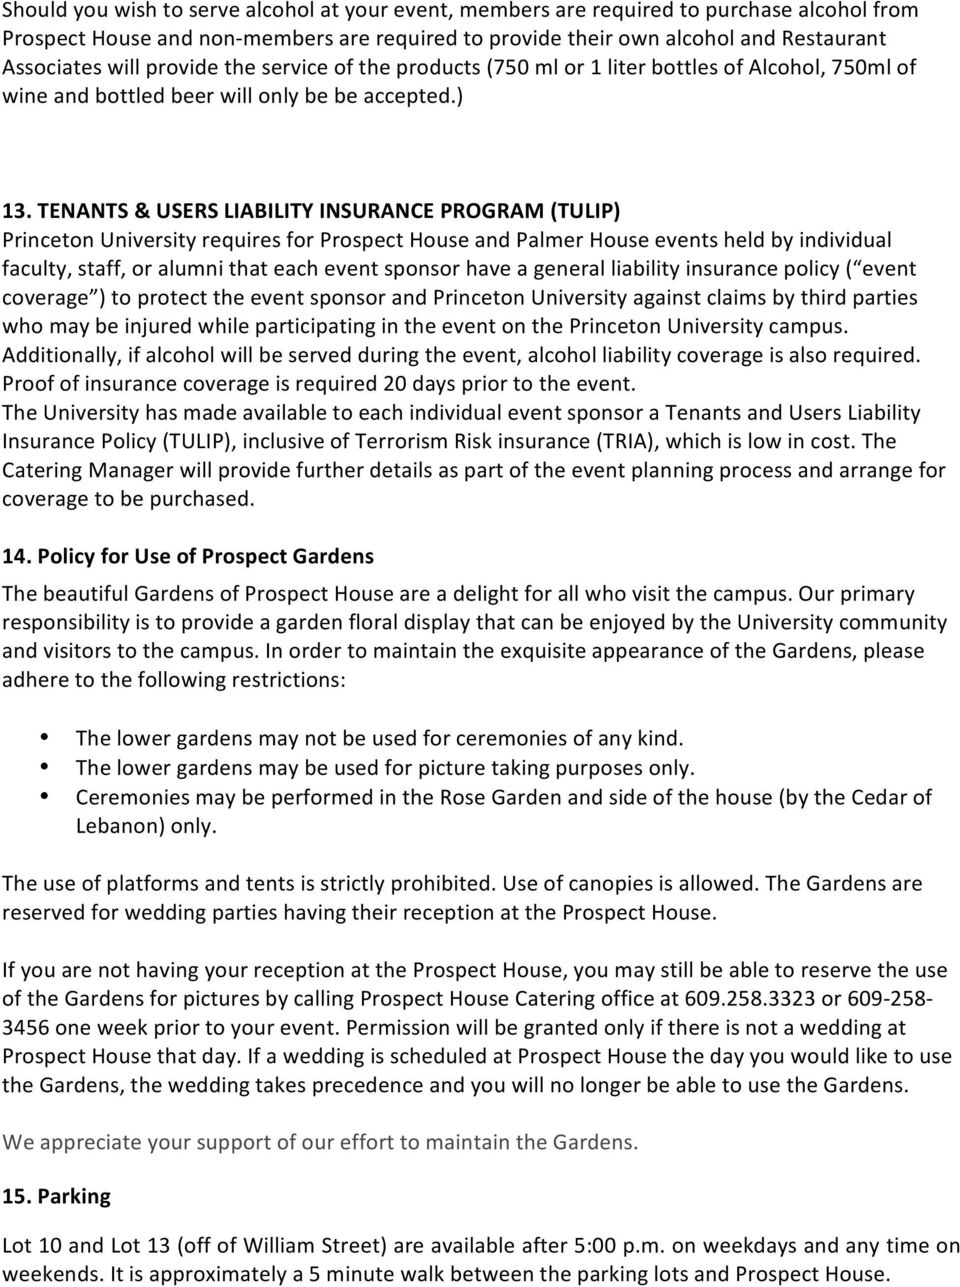 TENANTS & USERS LIABILITY INSURANCE PROGRAM (TULIP) Princeton University requires for Prospect House and Palmer House events held by individual faculty, staff, or alumni that each event sponsor have